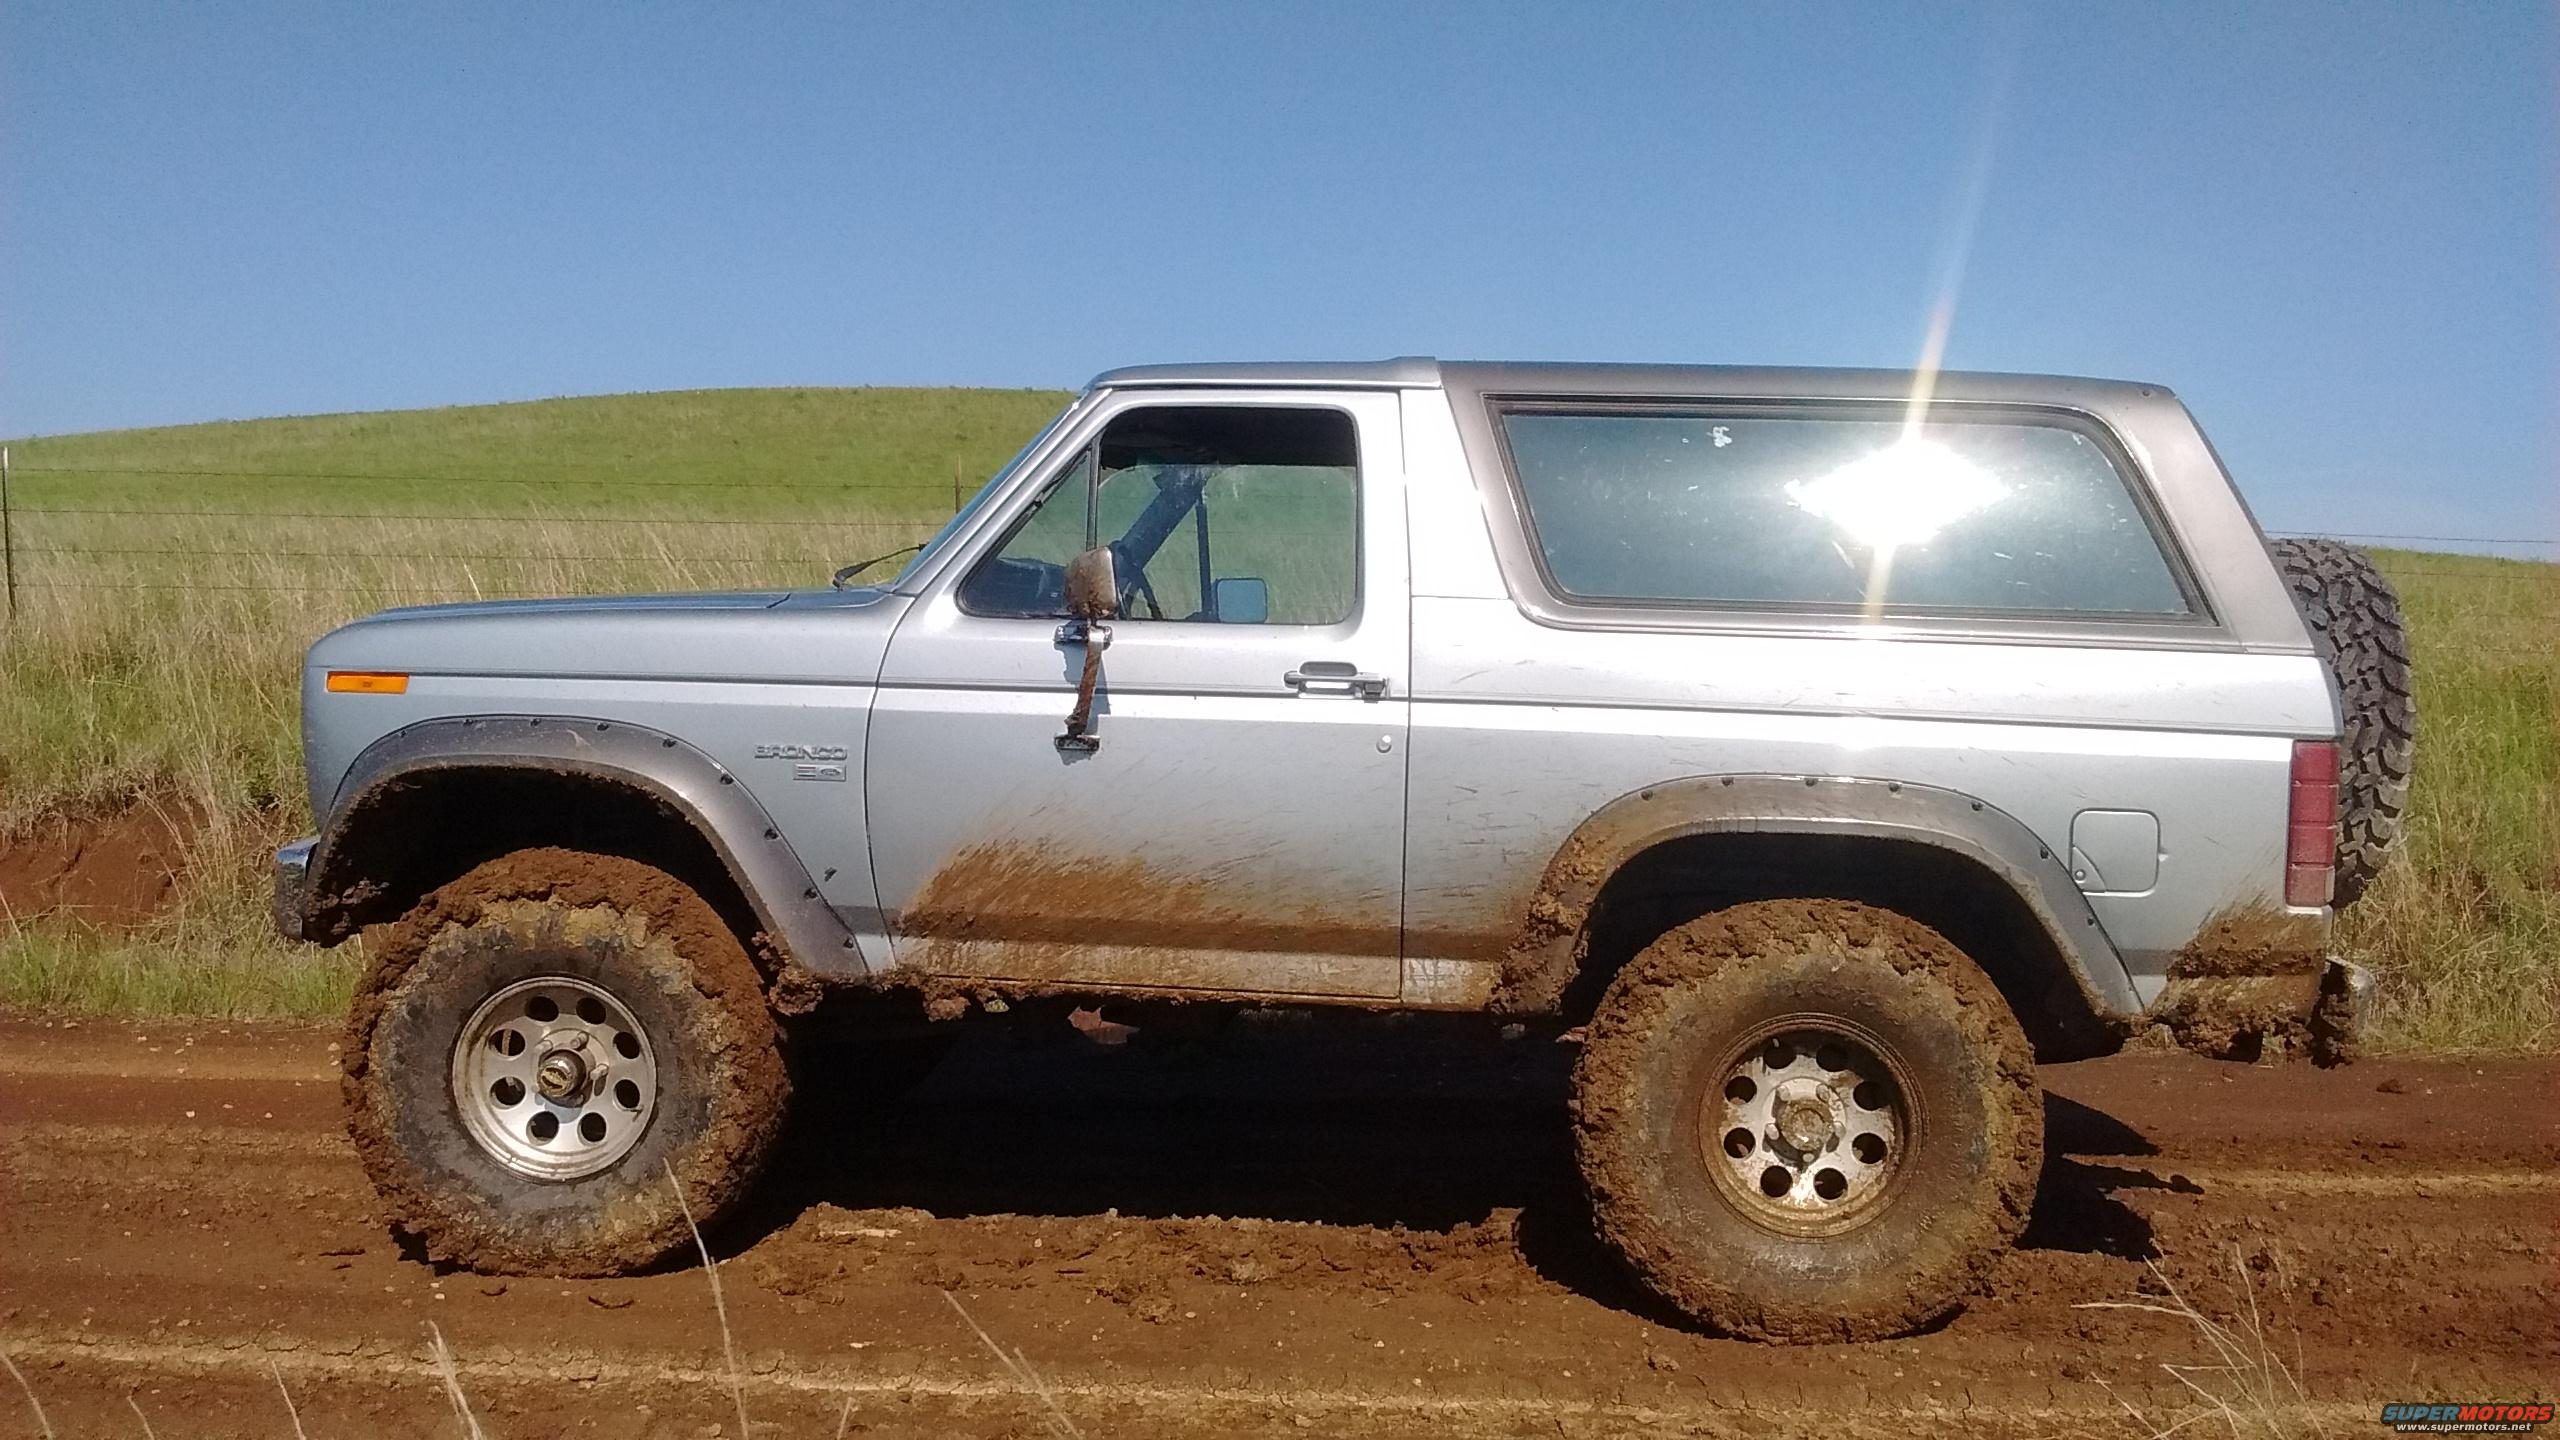 Top Paint Ford Bronco Forum Jobs The Same Was Used On Flares And It Is Holding Up Just As Well After Almost 15 Years